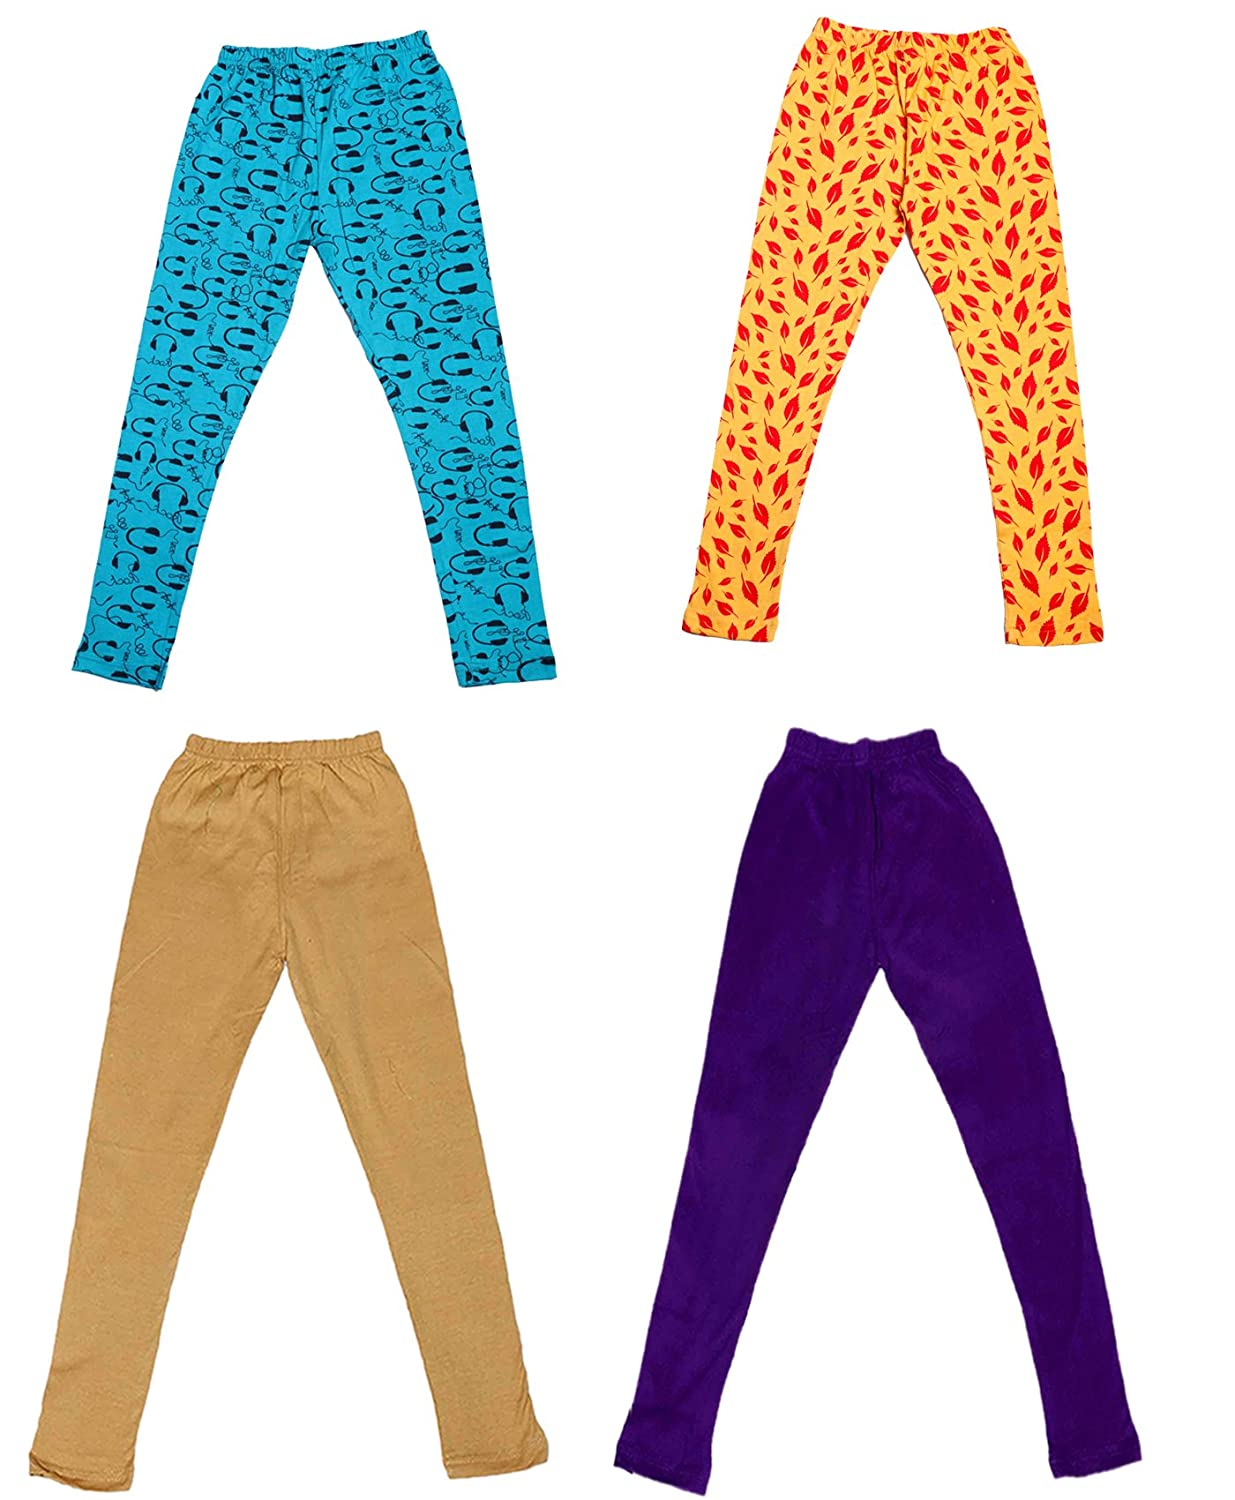 and 2 Cotton Printed Legging Pants Indistar Girls 2 Cotton Solid Legging Pants Pack Of 4 /_Multicolor/_Size-13-14 Years/_71401021718-IW-P4-36